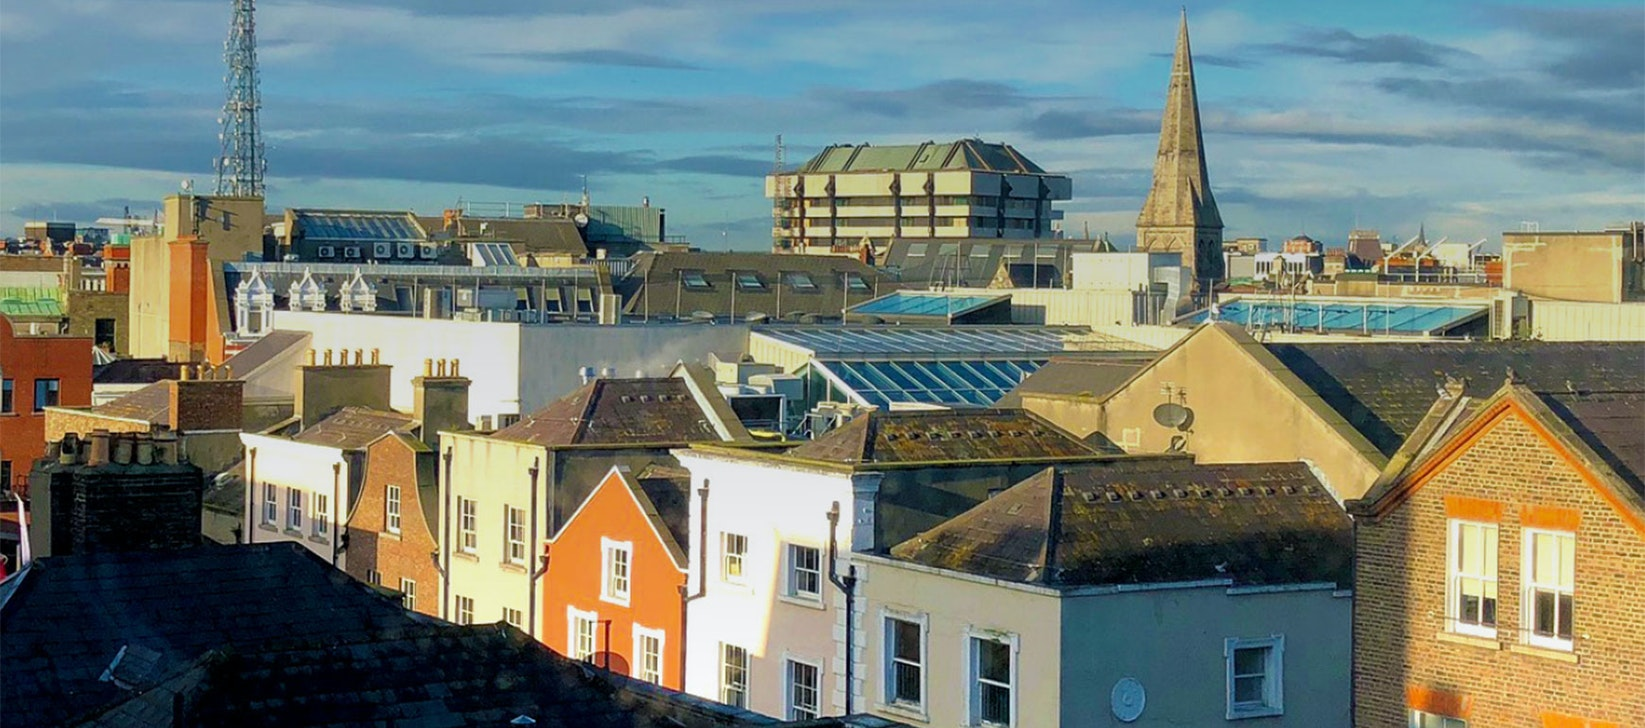 Dublin economy continues to strengthen amid housing challenges